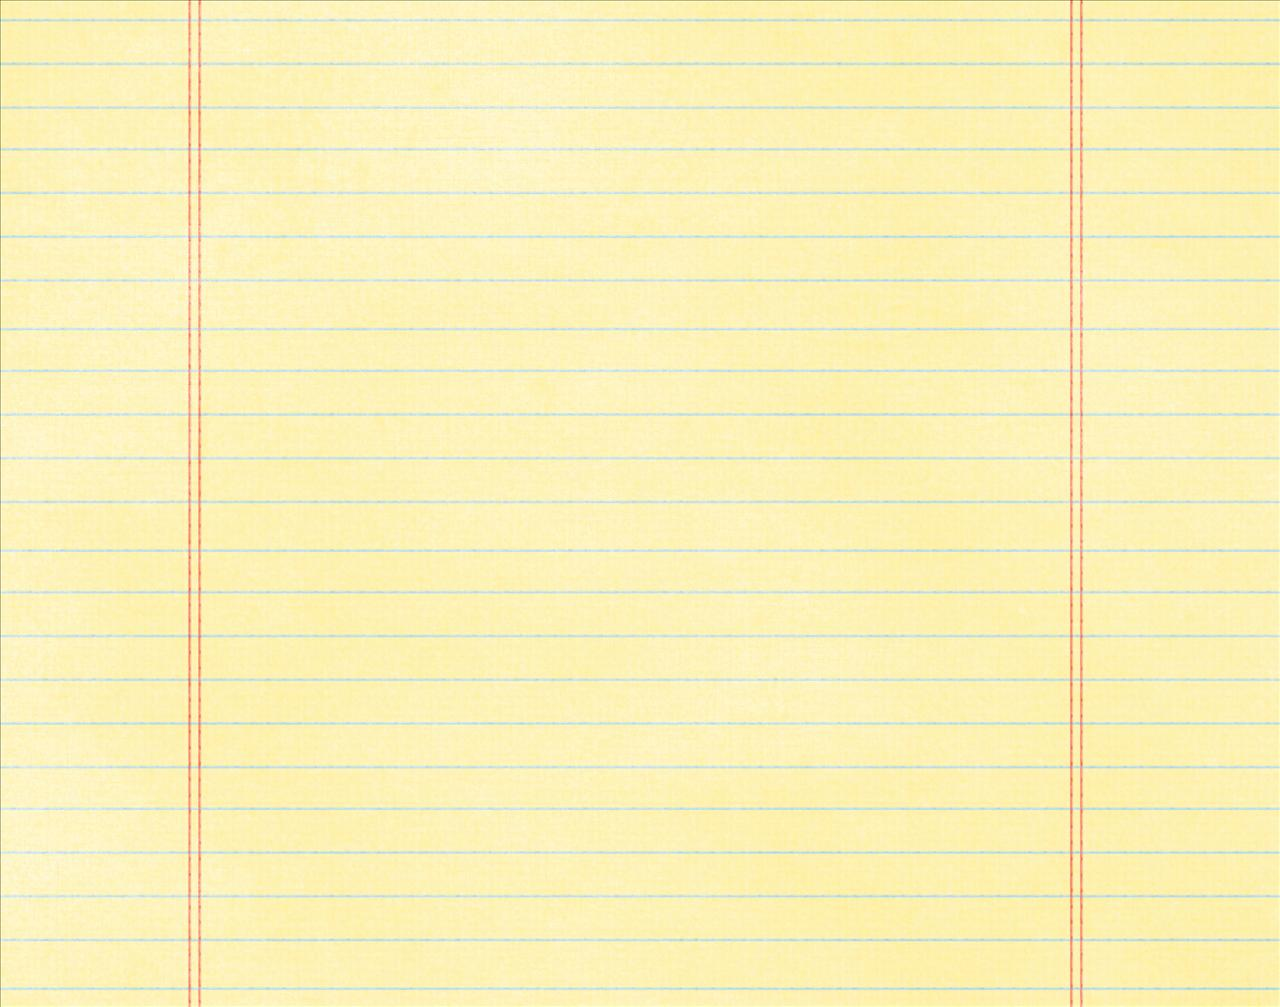 Yellow Notebook Paper Background Back To School Notebook Paper – Yellow Notebook Paper Background